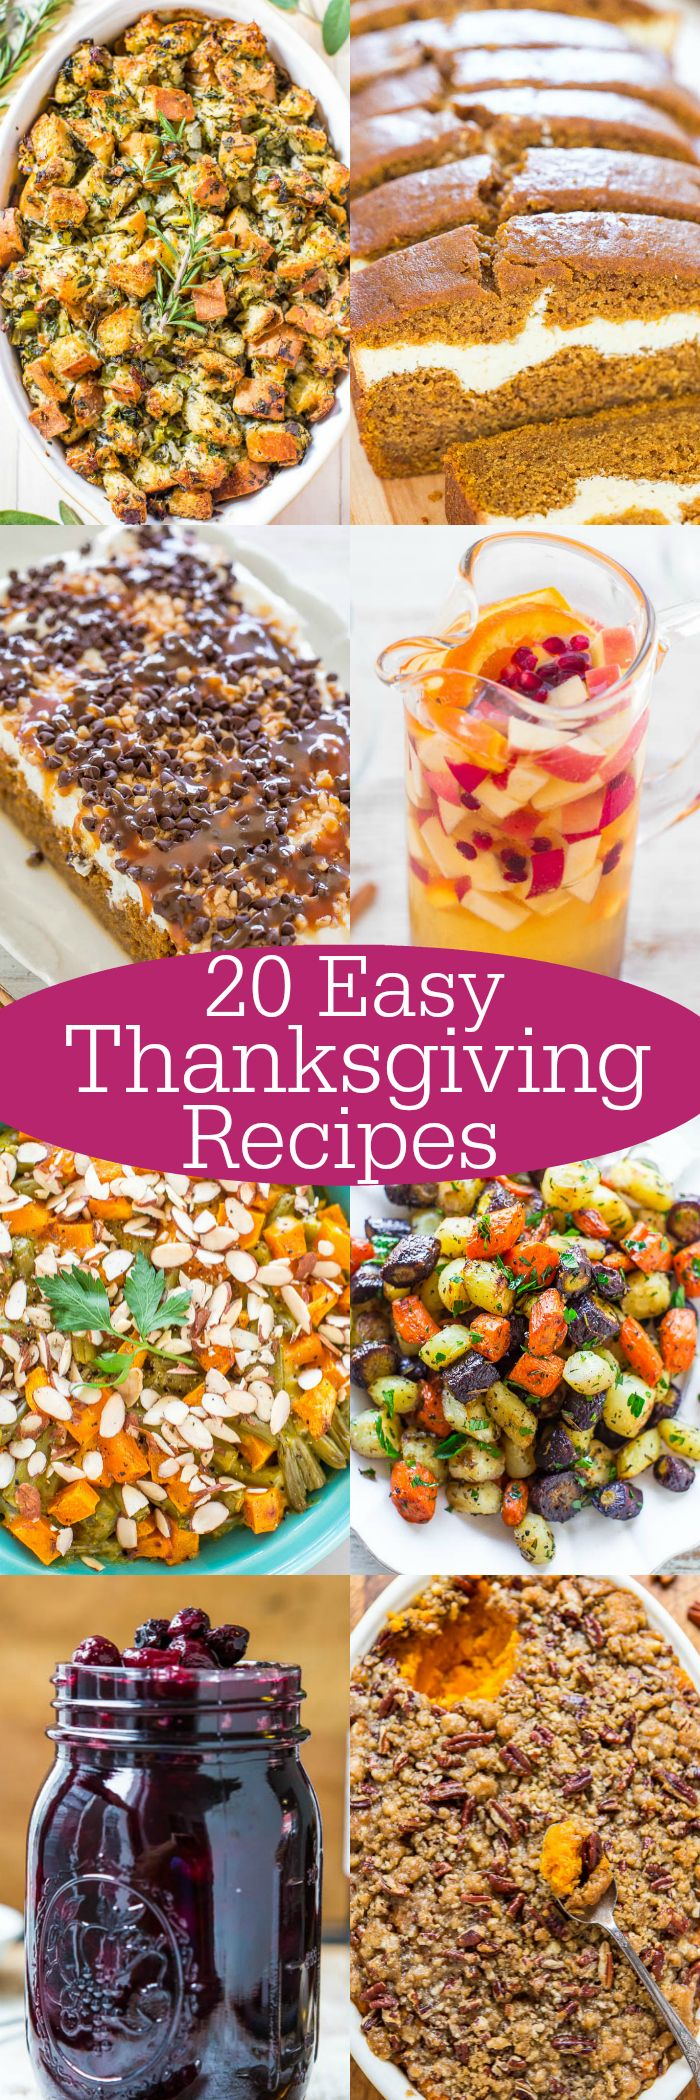 20 Easy Thanksgiving Recipes